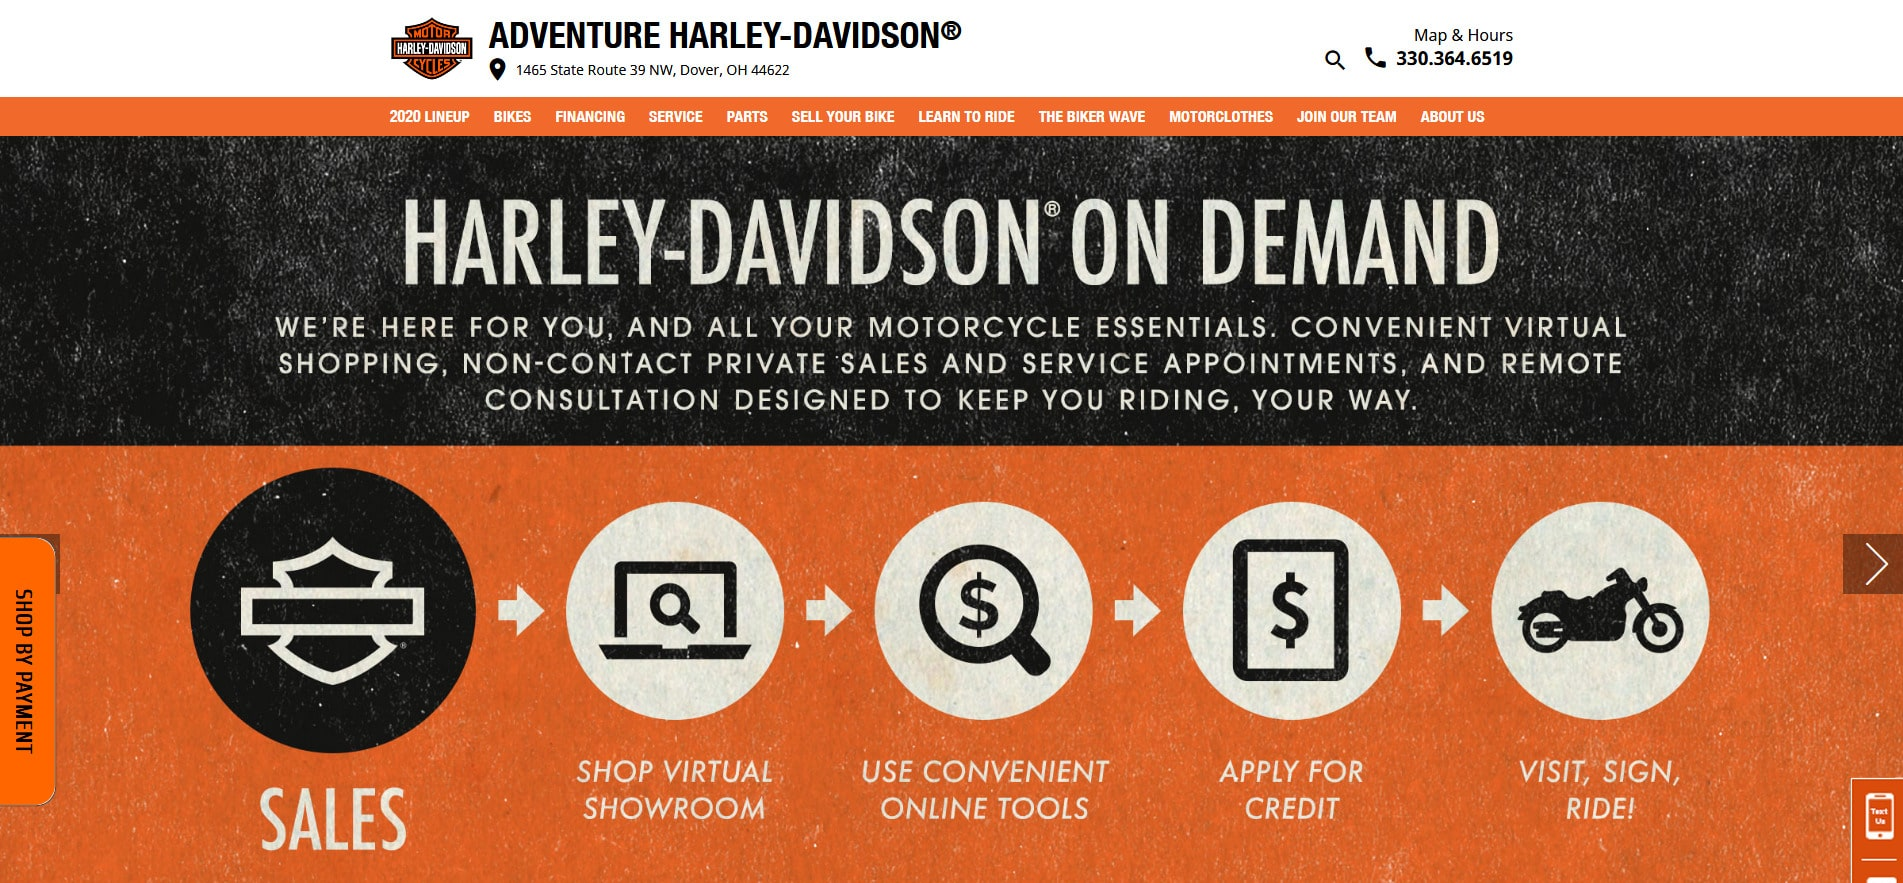 Adventure Harley-Davidson website